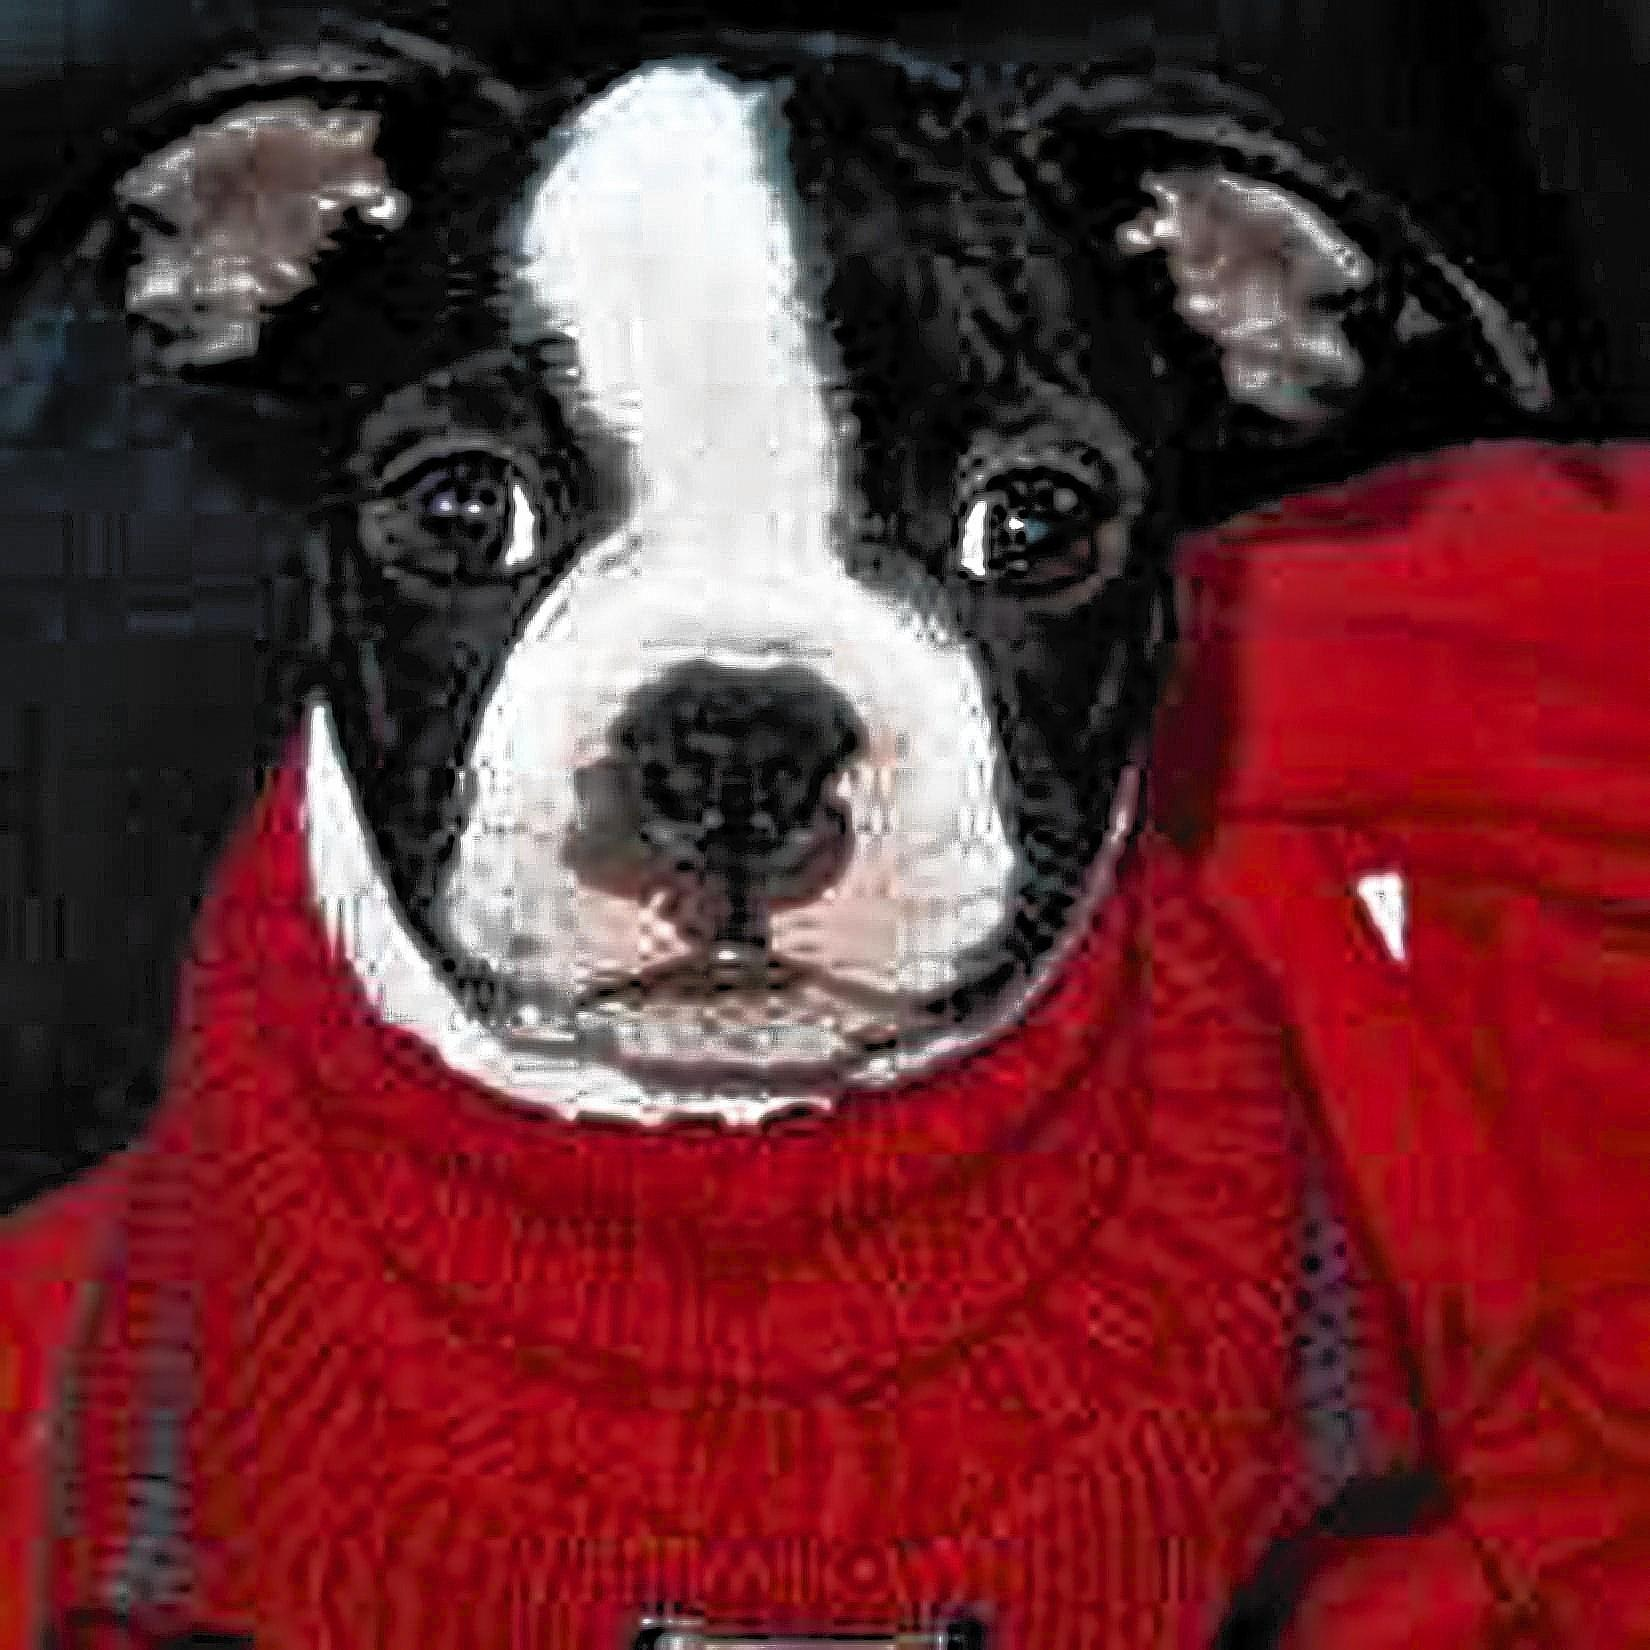 Rex, a 1 and a half year old Boston Terrier, owned and loved by Linda Carfagna, 51, of Laurys Station.